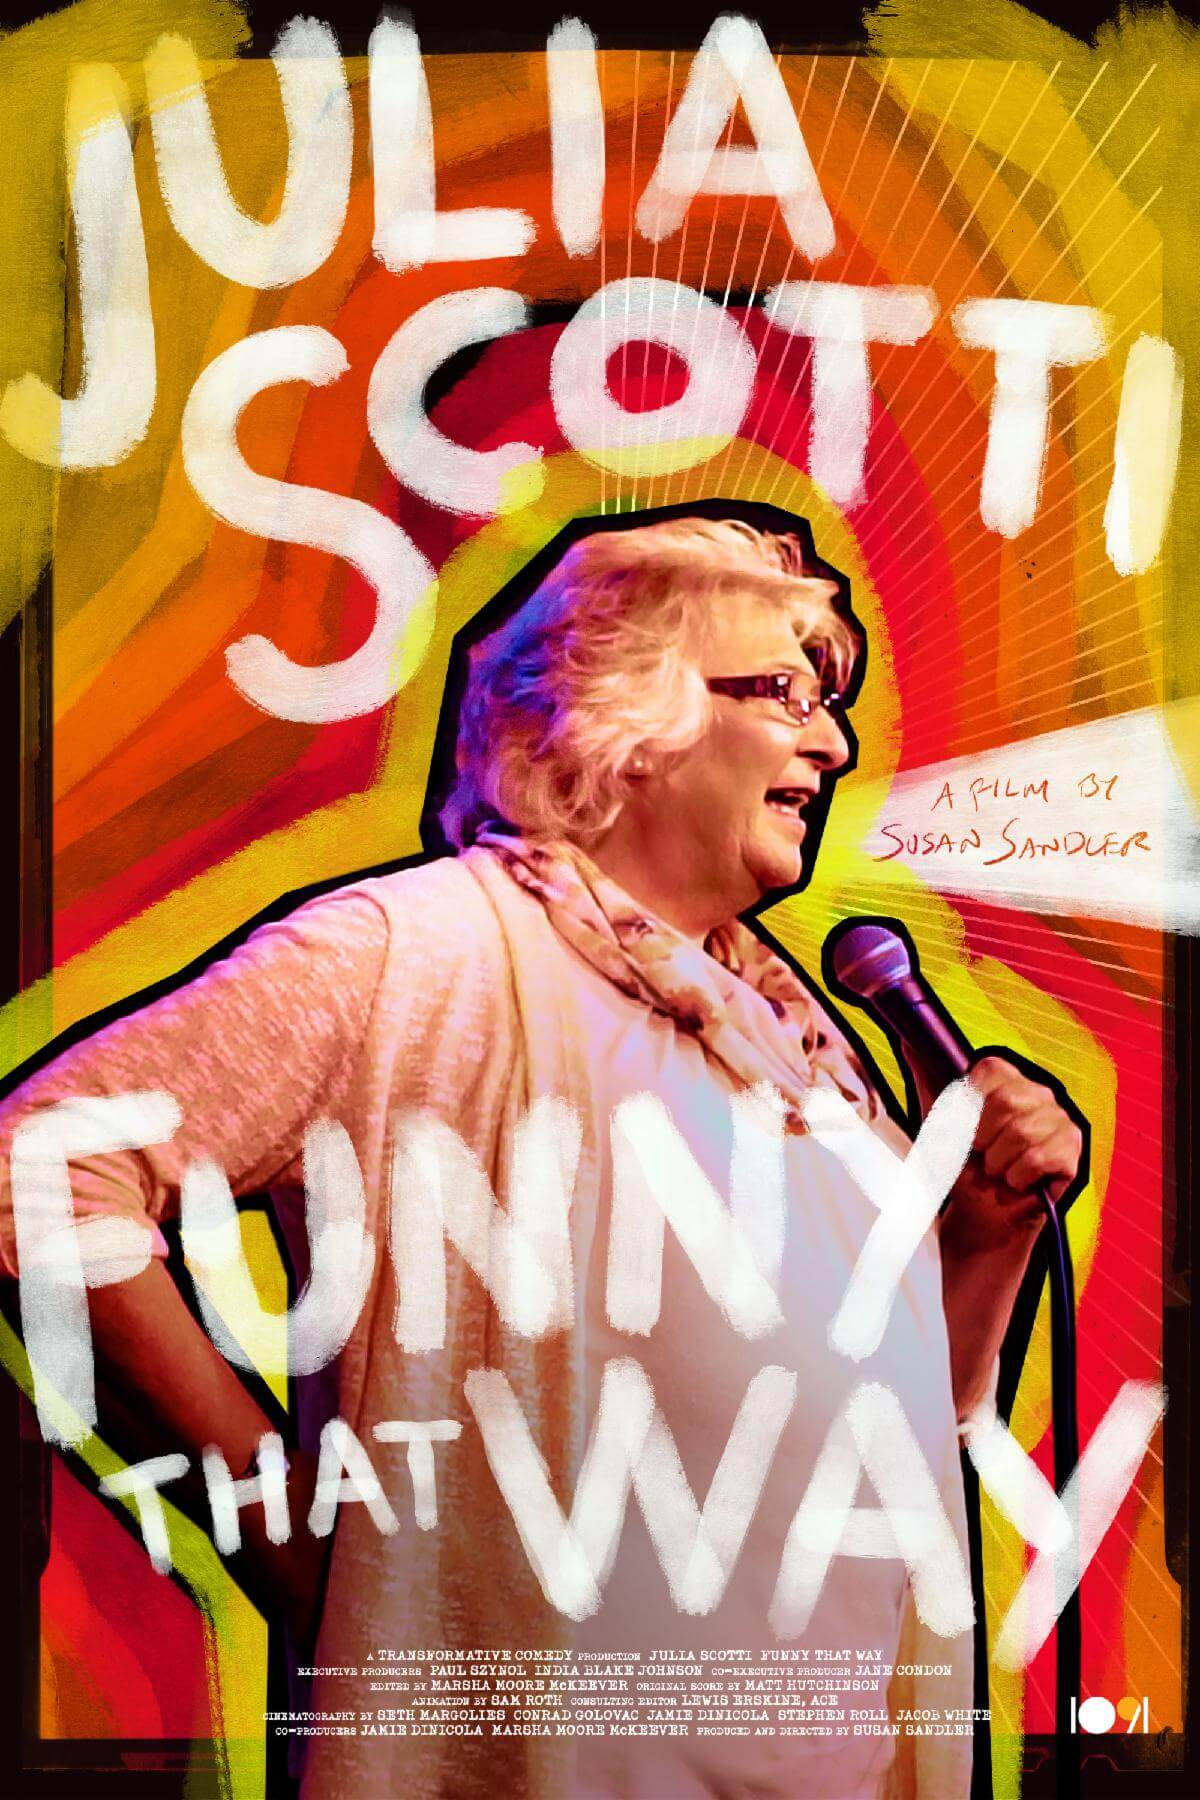 Trans Comedian Julia Scotti Proves Life Really Is Funny That Way